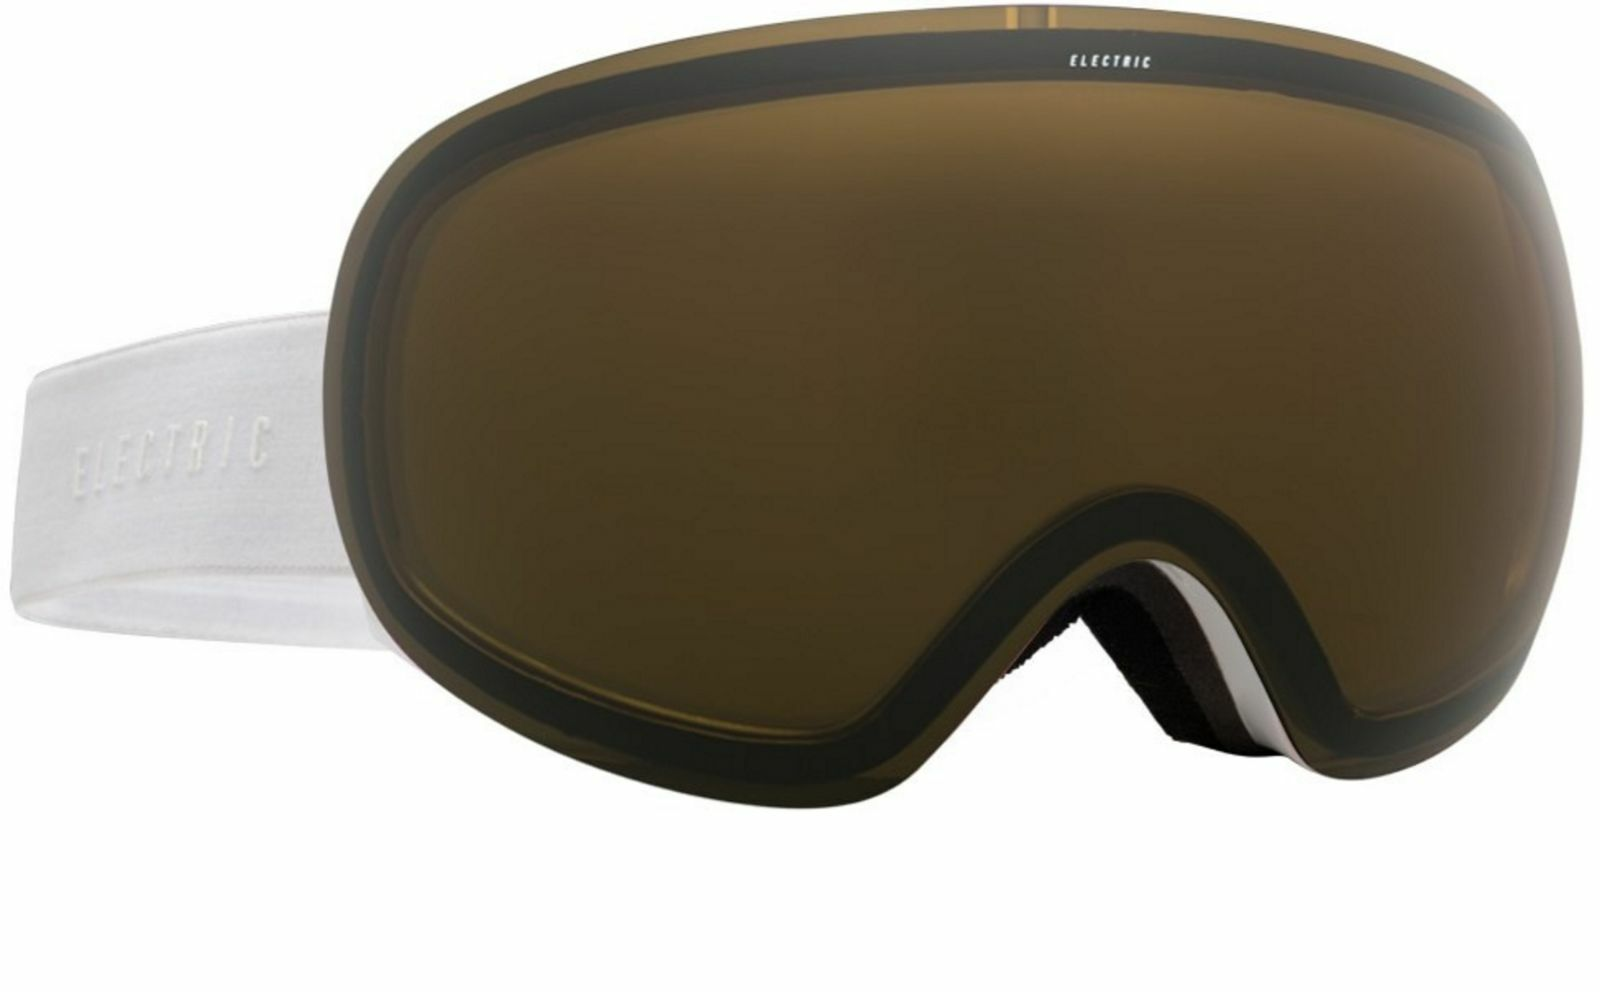 NEW Electric EG3.5 Goggles-Gloss White-Bronze Lens-SAME DAY SHIPPING